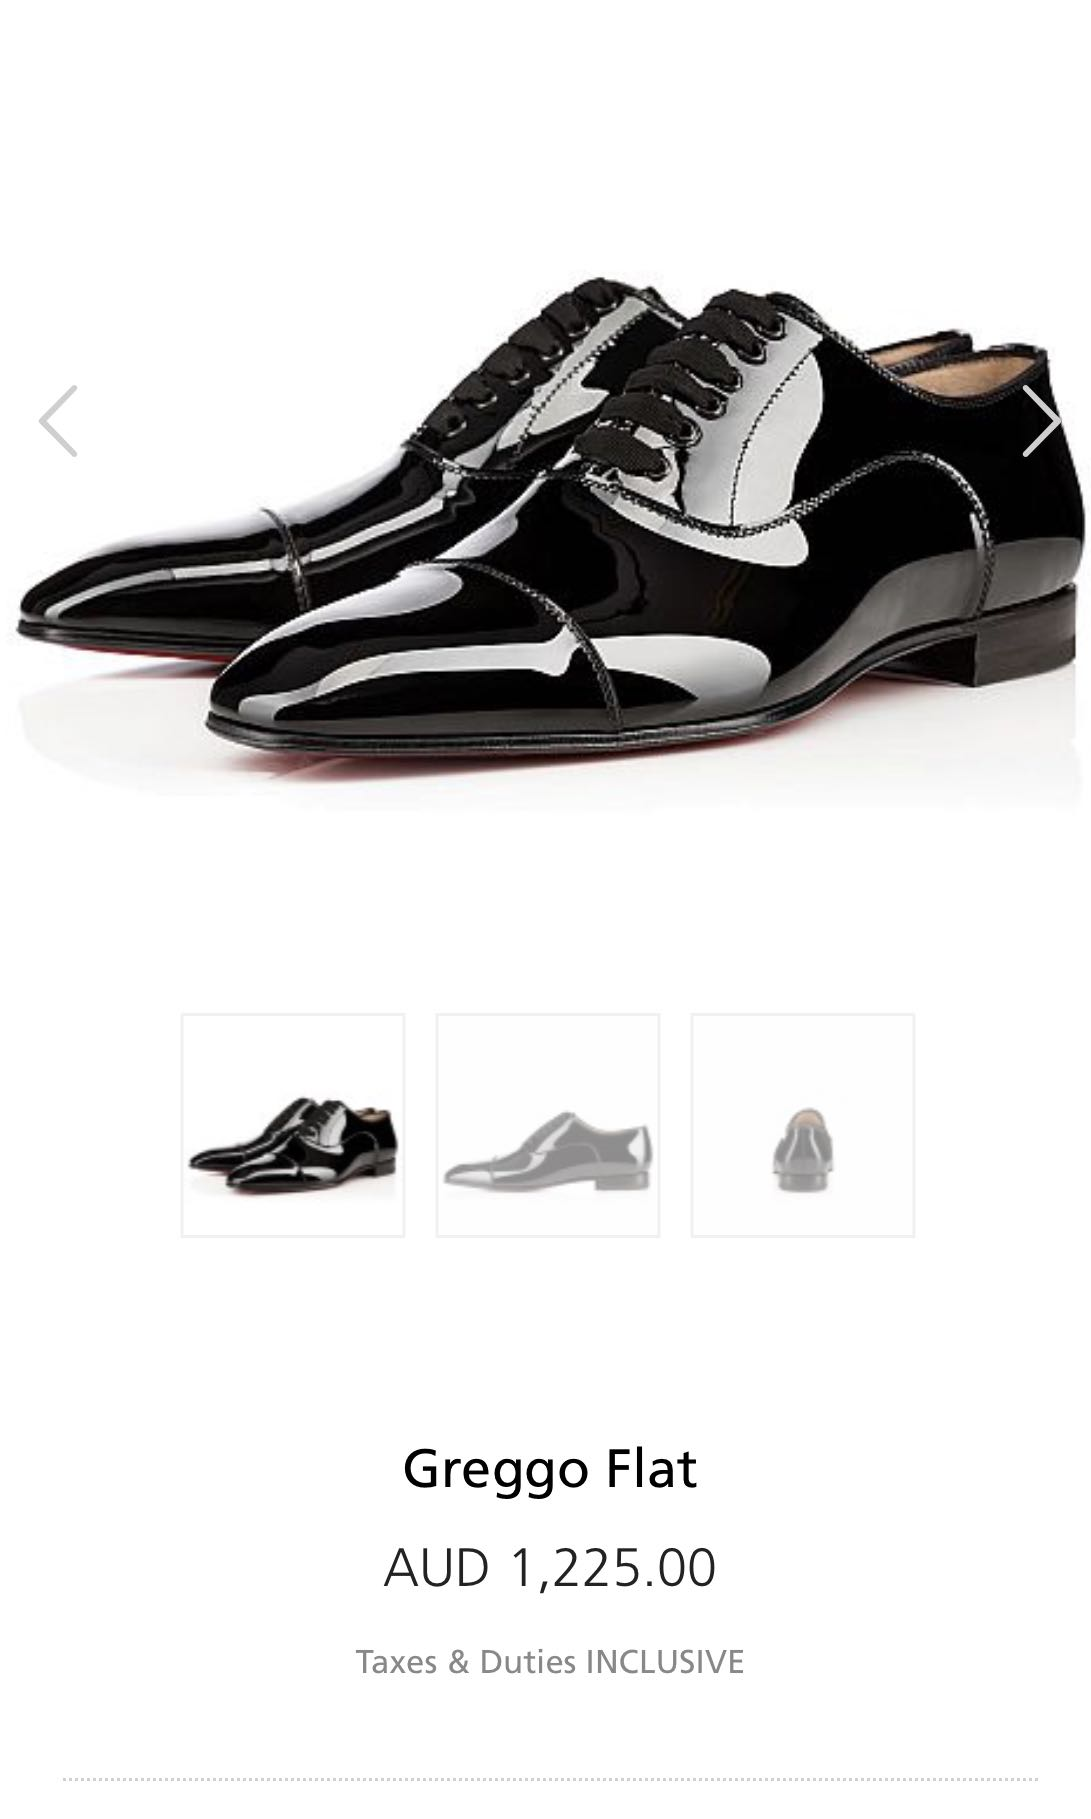 30d97cdc2be Christian Louboutin Mens Greggo Flat Patent Leather Shoe, Luxury ...